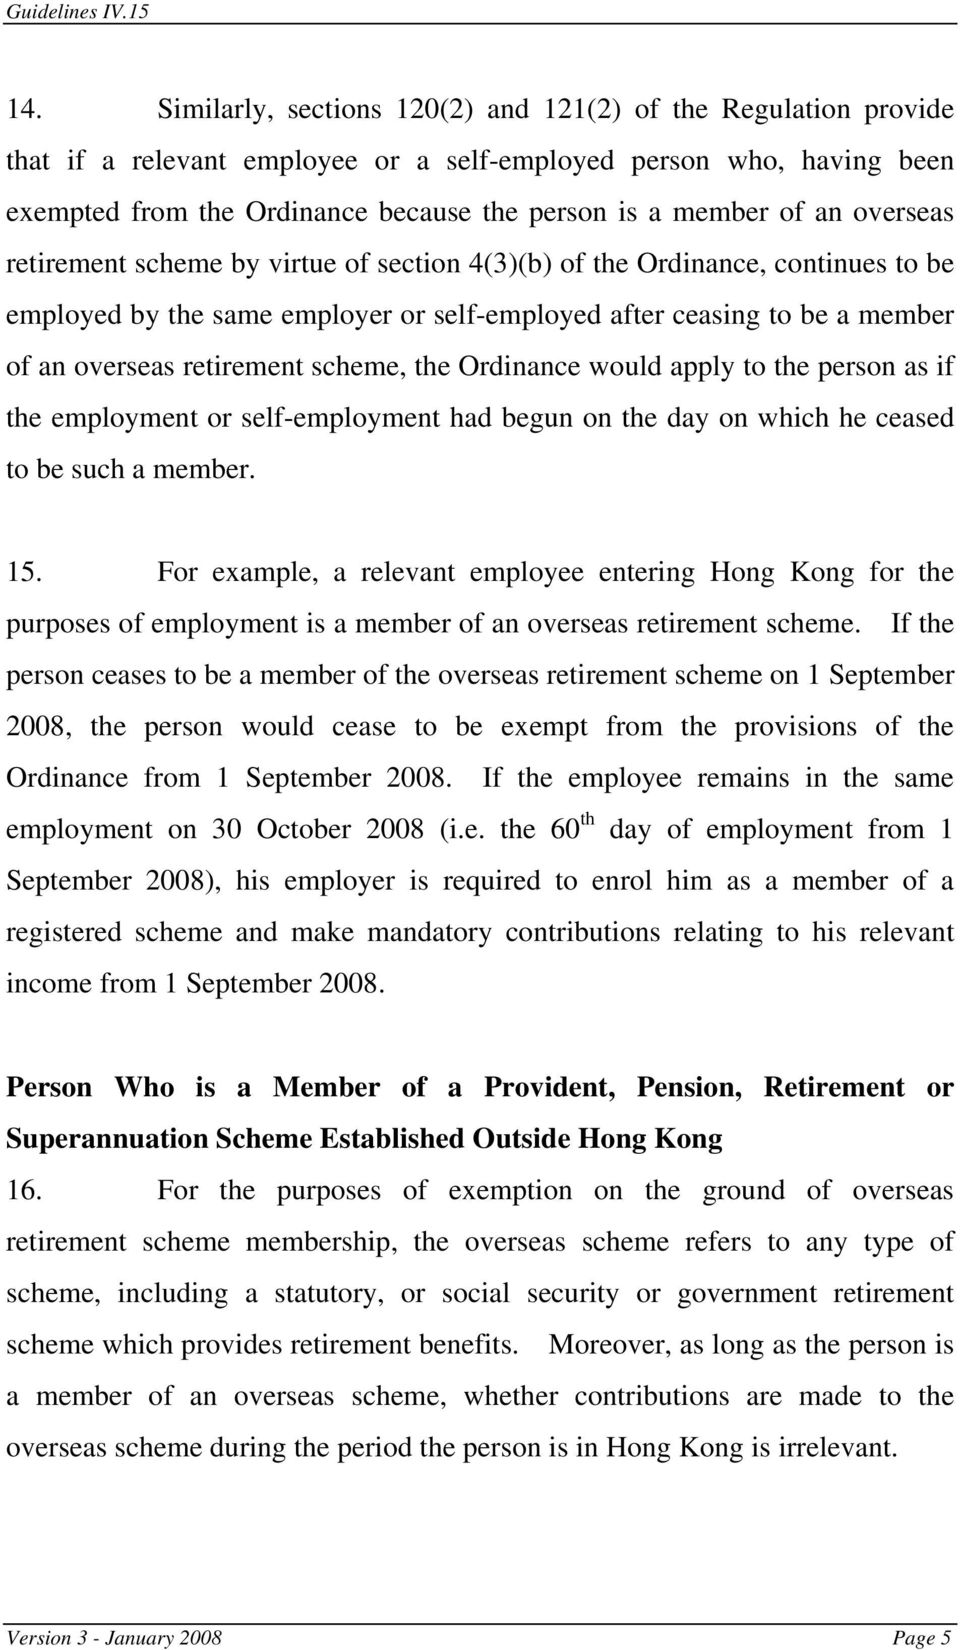 scheme, the Ordinance would apply to the person as if the employment or self-employment had begun on the day on which he ceased to be such a member. 15.